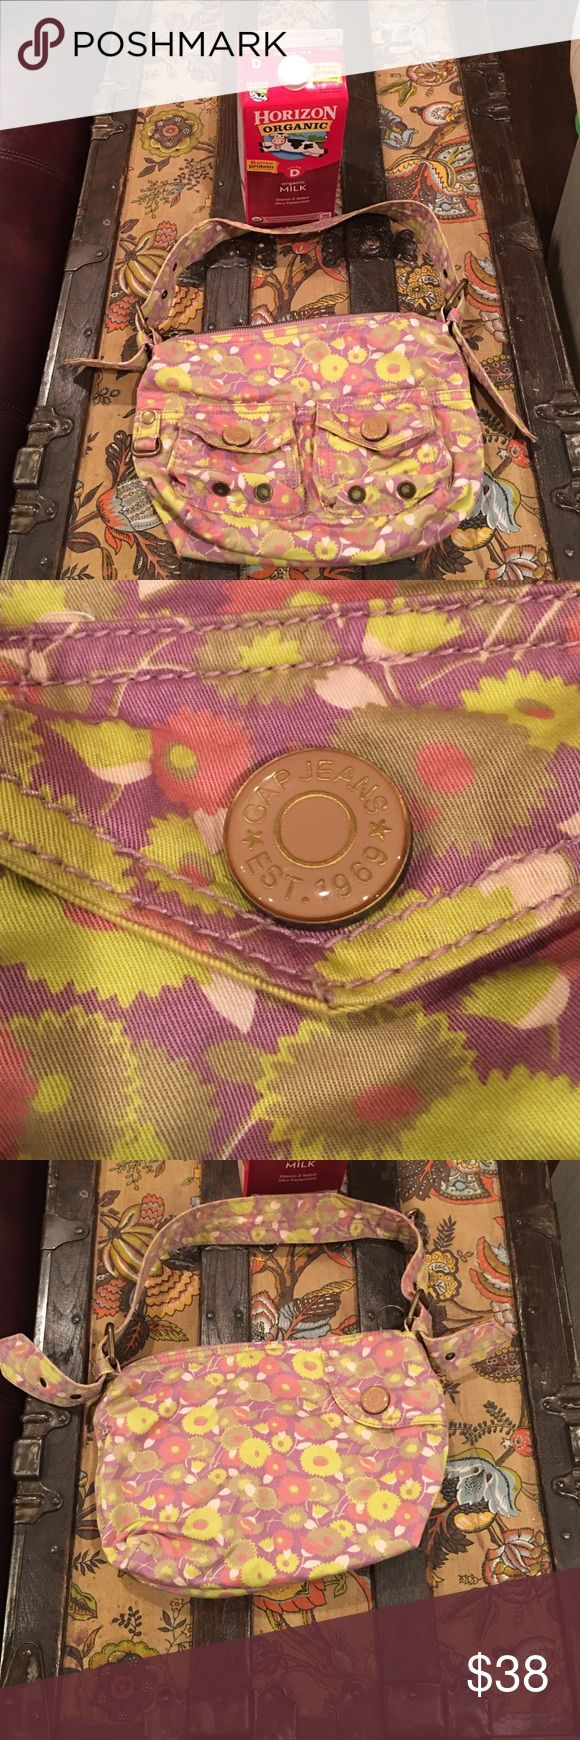 GAP cloth purse w/ brass hardware NWOT Cute flower print GAP Purse 👛 NWOT. I bought it for my daughter & she never used it. Too small for me. It has mustard color lining. Any questions LMK. Used milk carton for size scale. Buckle adjustable strap on both ends 😍💗lavender, pink, tan, yellow soft fabric GAP Bags Satchels